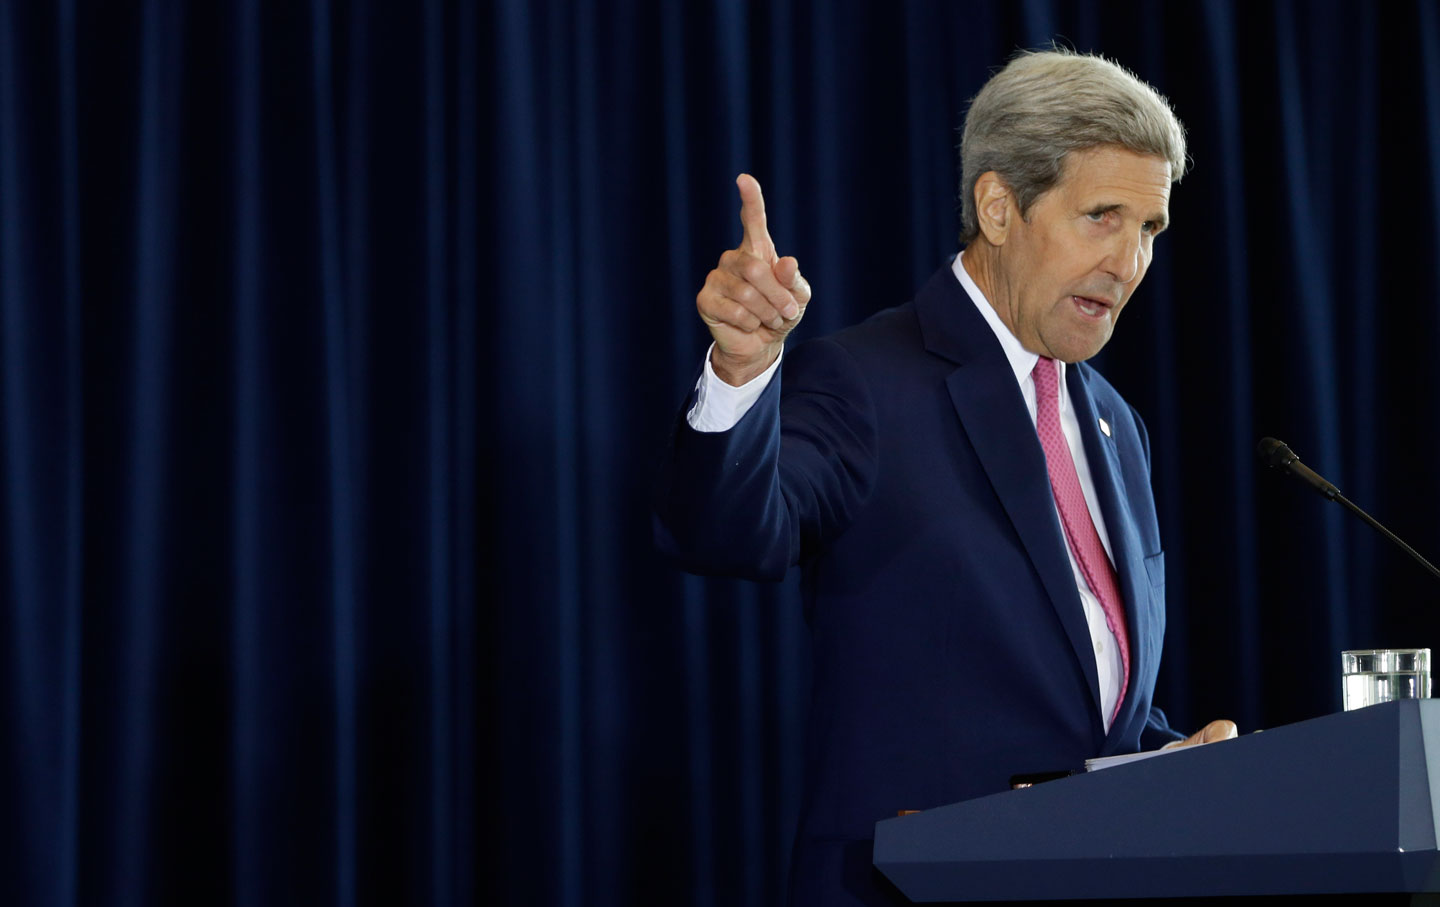 John Kerry Iran deal